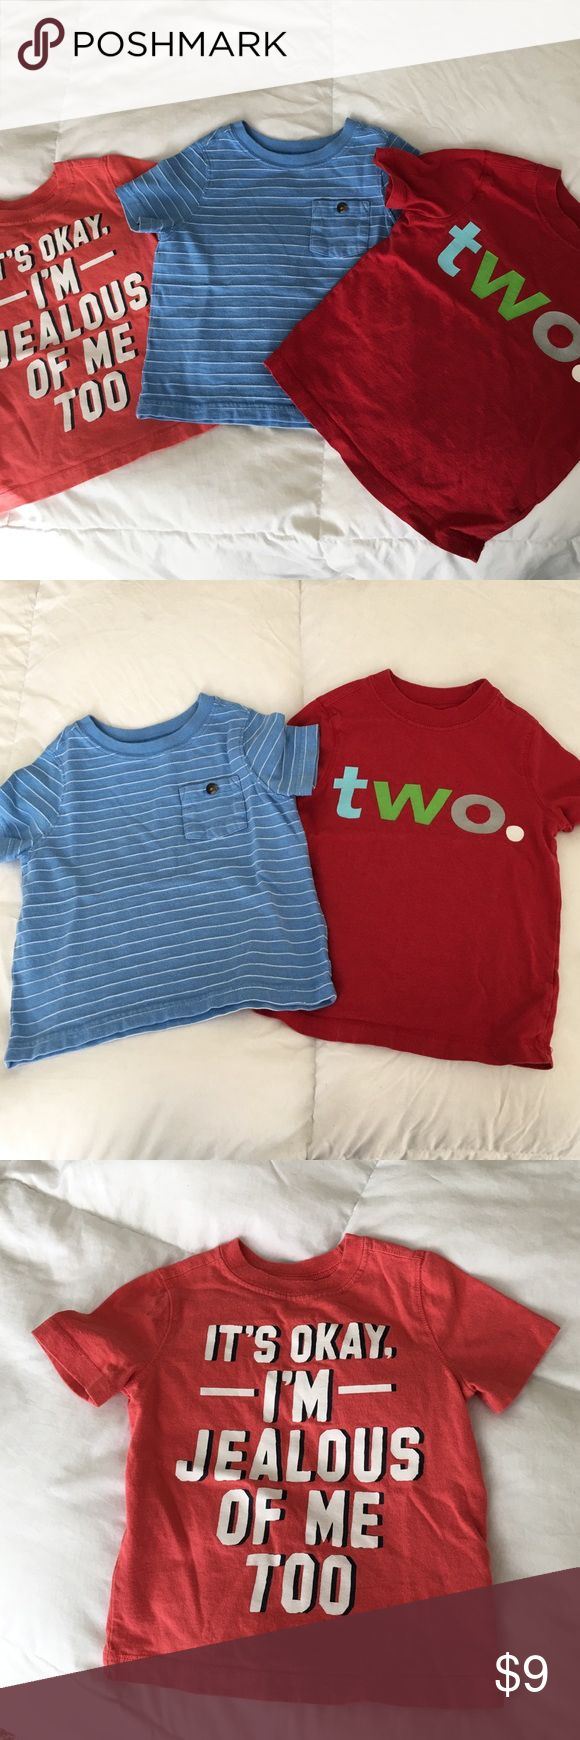 Old Navy Tees Toddler Old Navy Tee Bundle. 2 2t shirts; 1 3t shirt that fits like 2t. Old Navy Shirts & Tops Tees - Short Sleeve